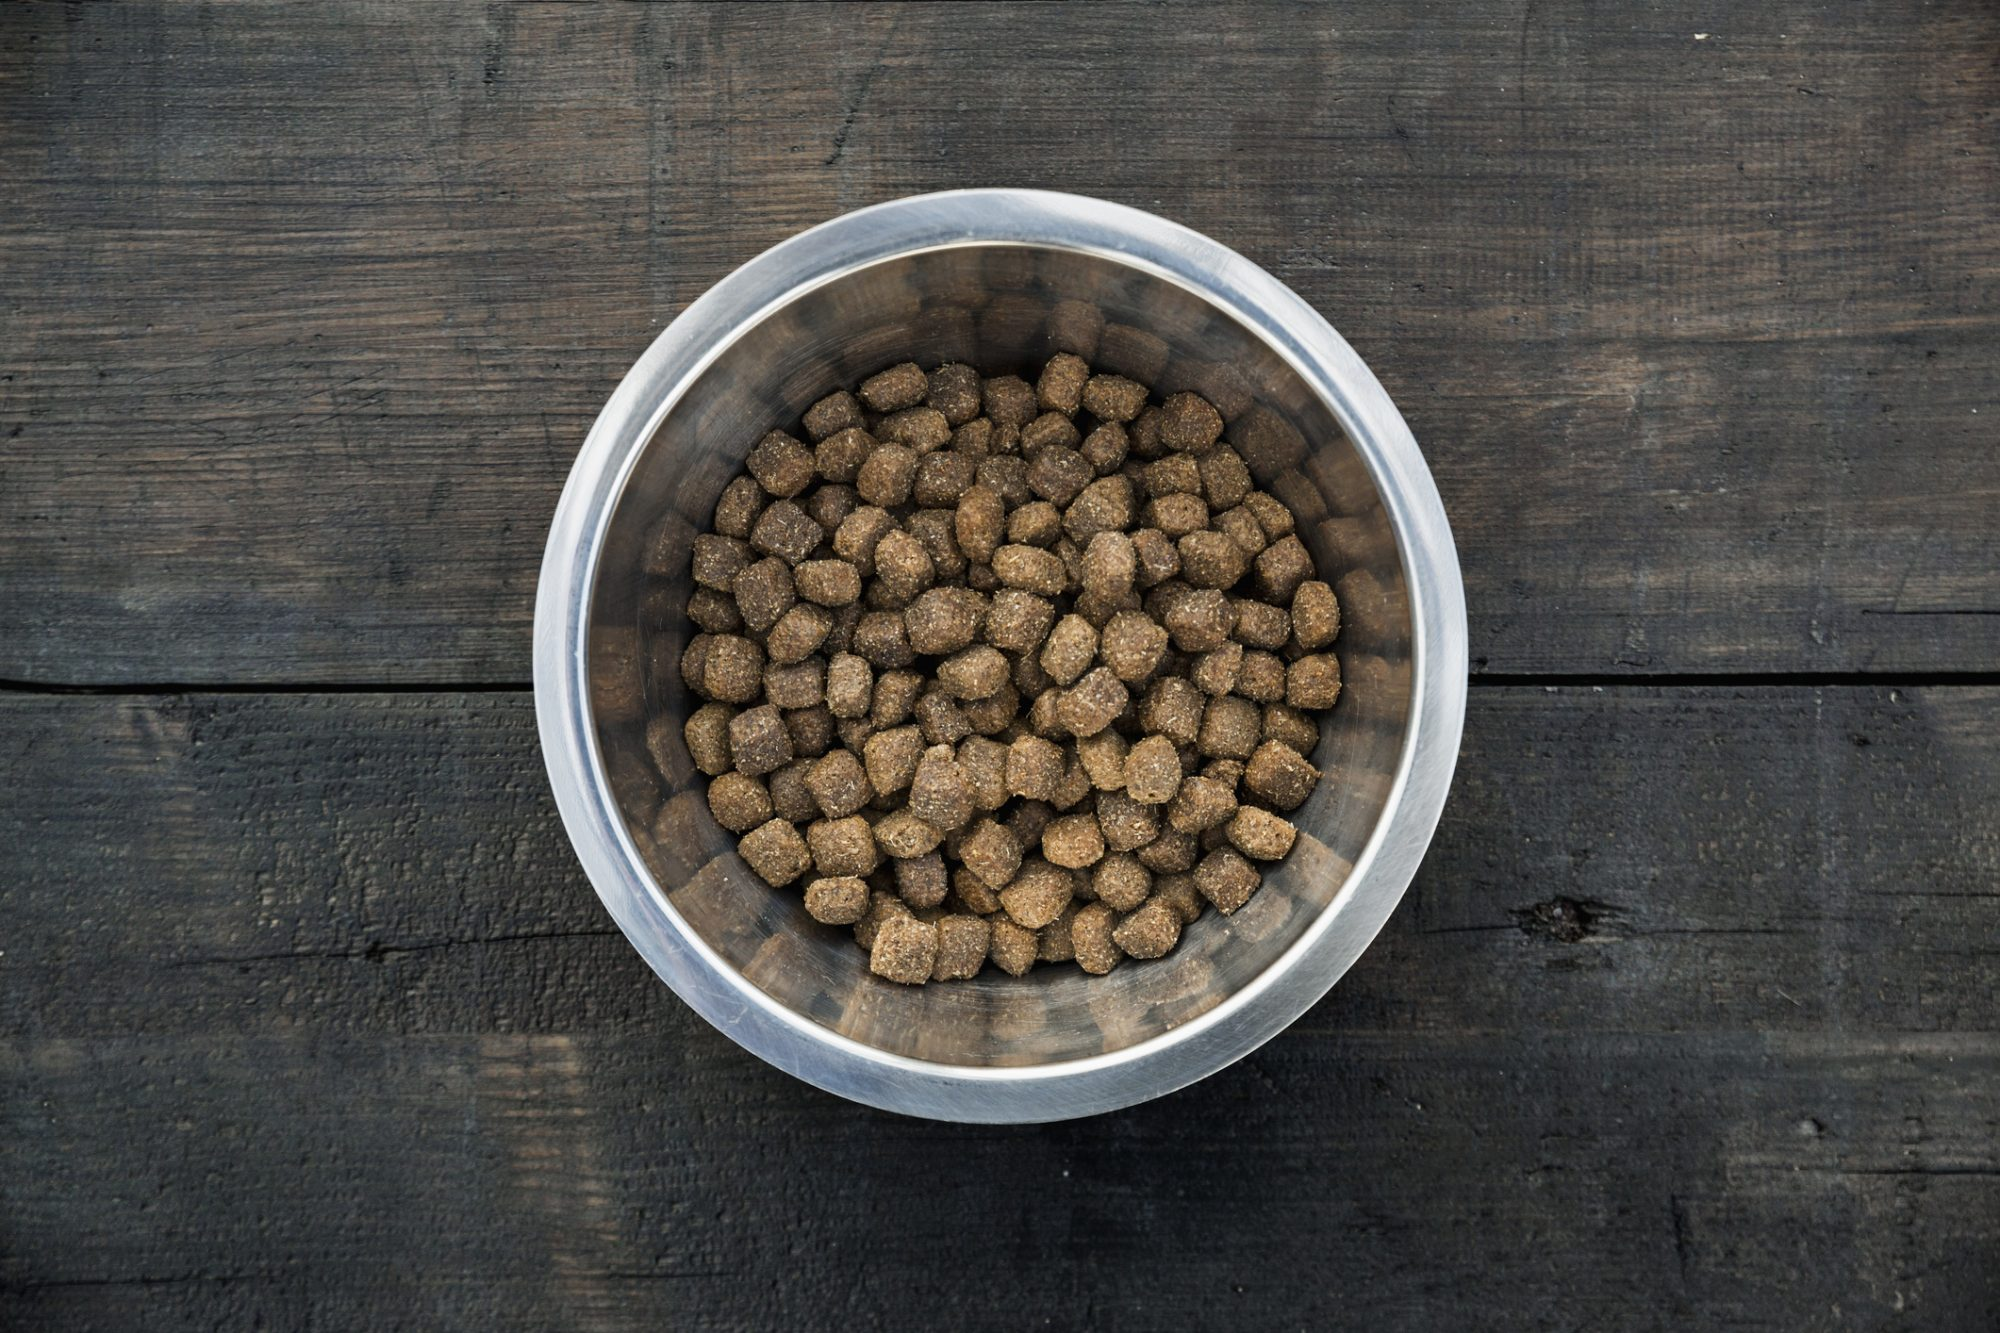 FDA Expands Recall on Dog Food for Potentially Toxic Levels of Vitamin D